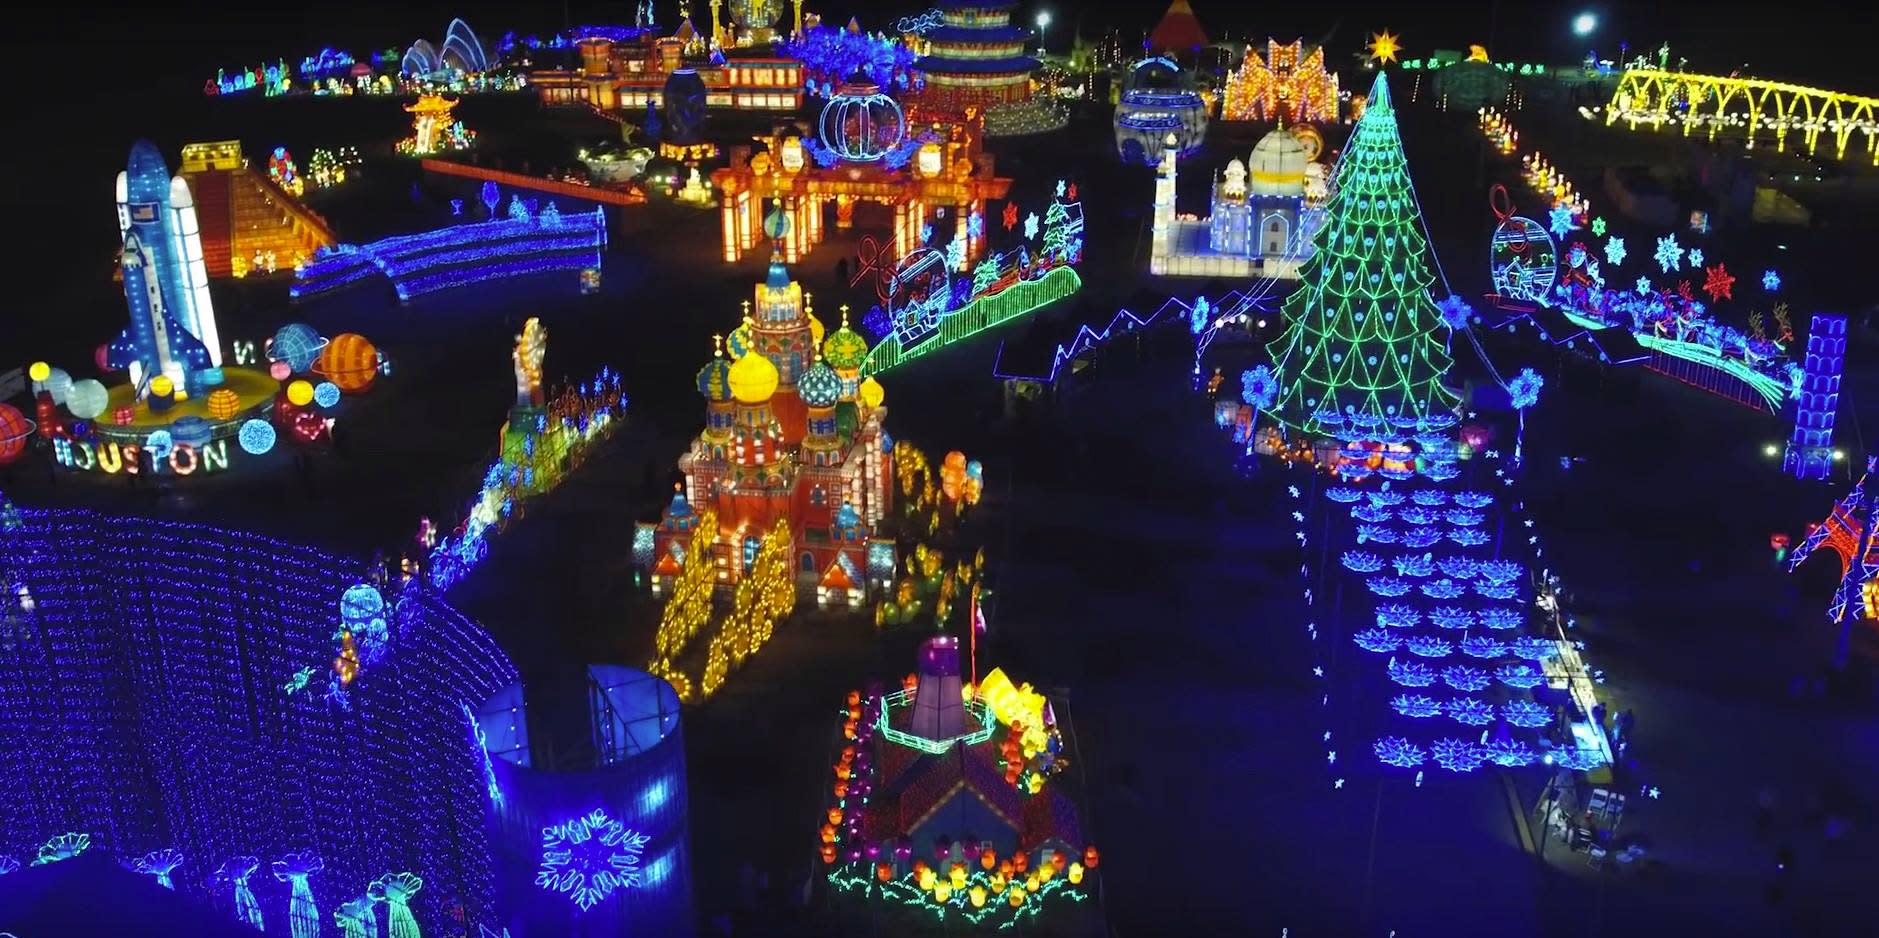 Christmas Lights Events Near Houston 2020 Holiday Lights in Houston | Best Christmas Displays & Events